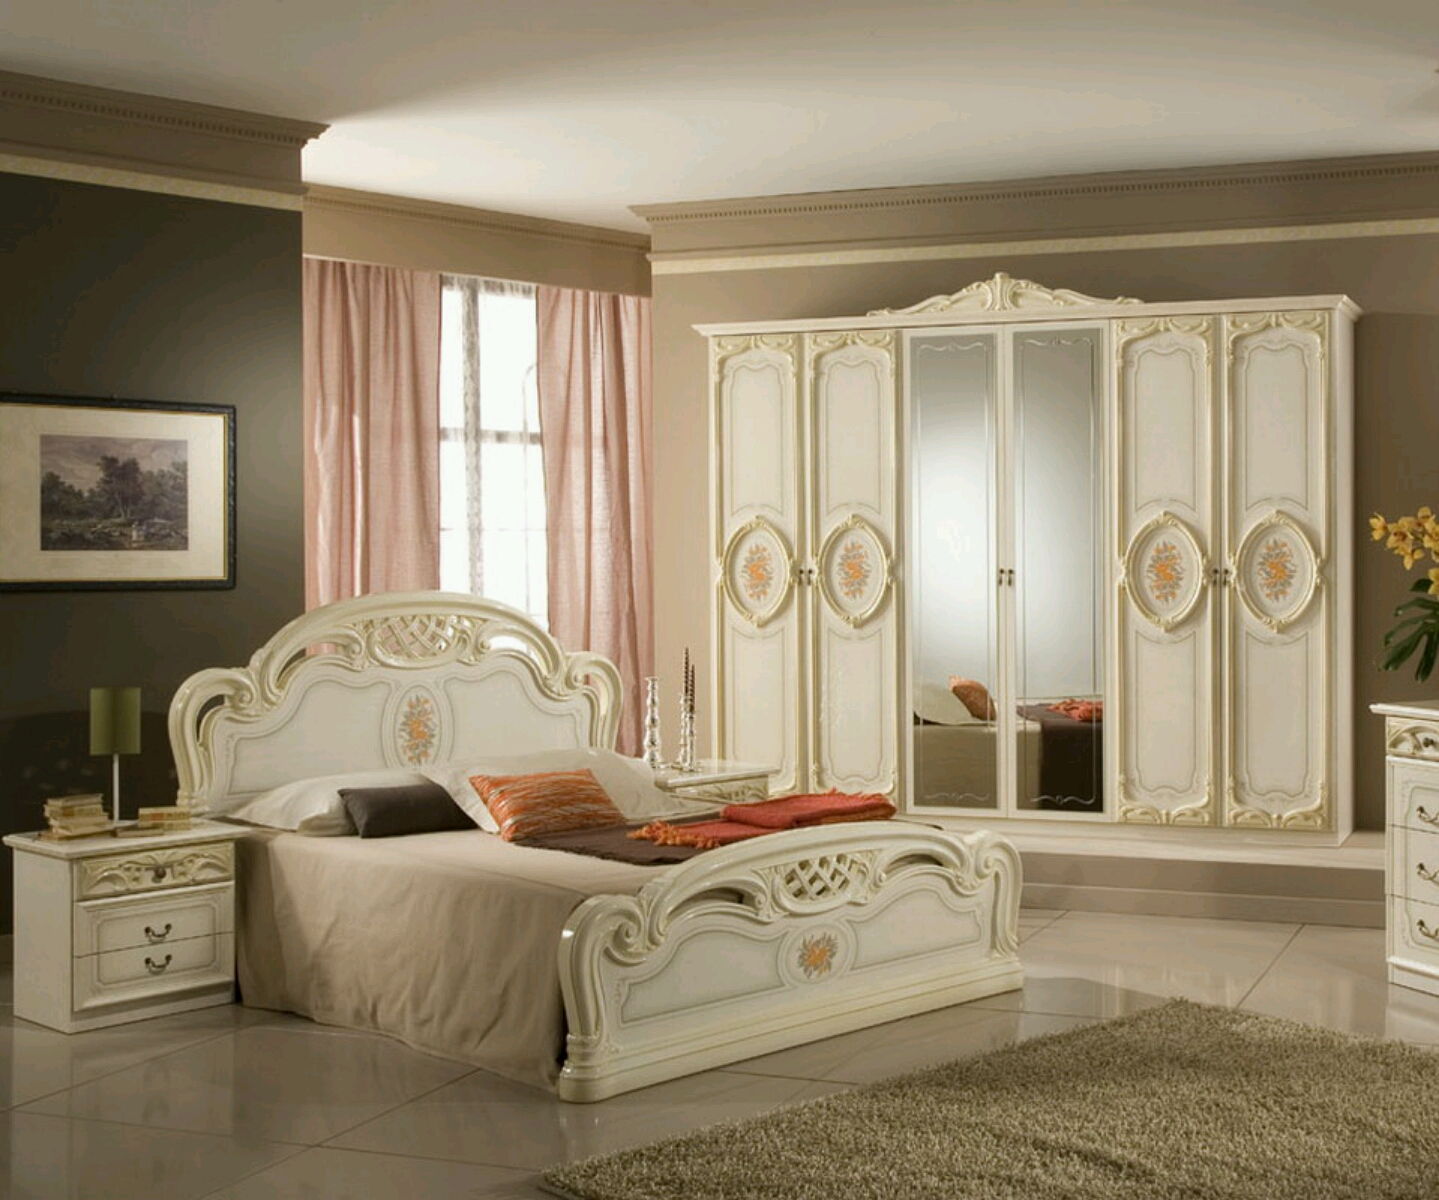 Modern luxury bedroom furniture designs ideas vintage for Home furniture ideas